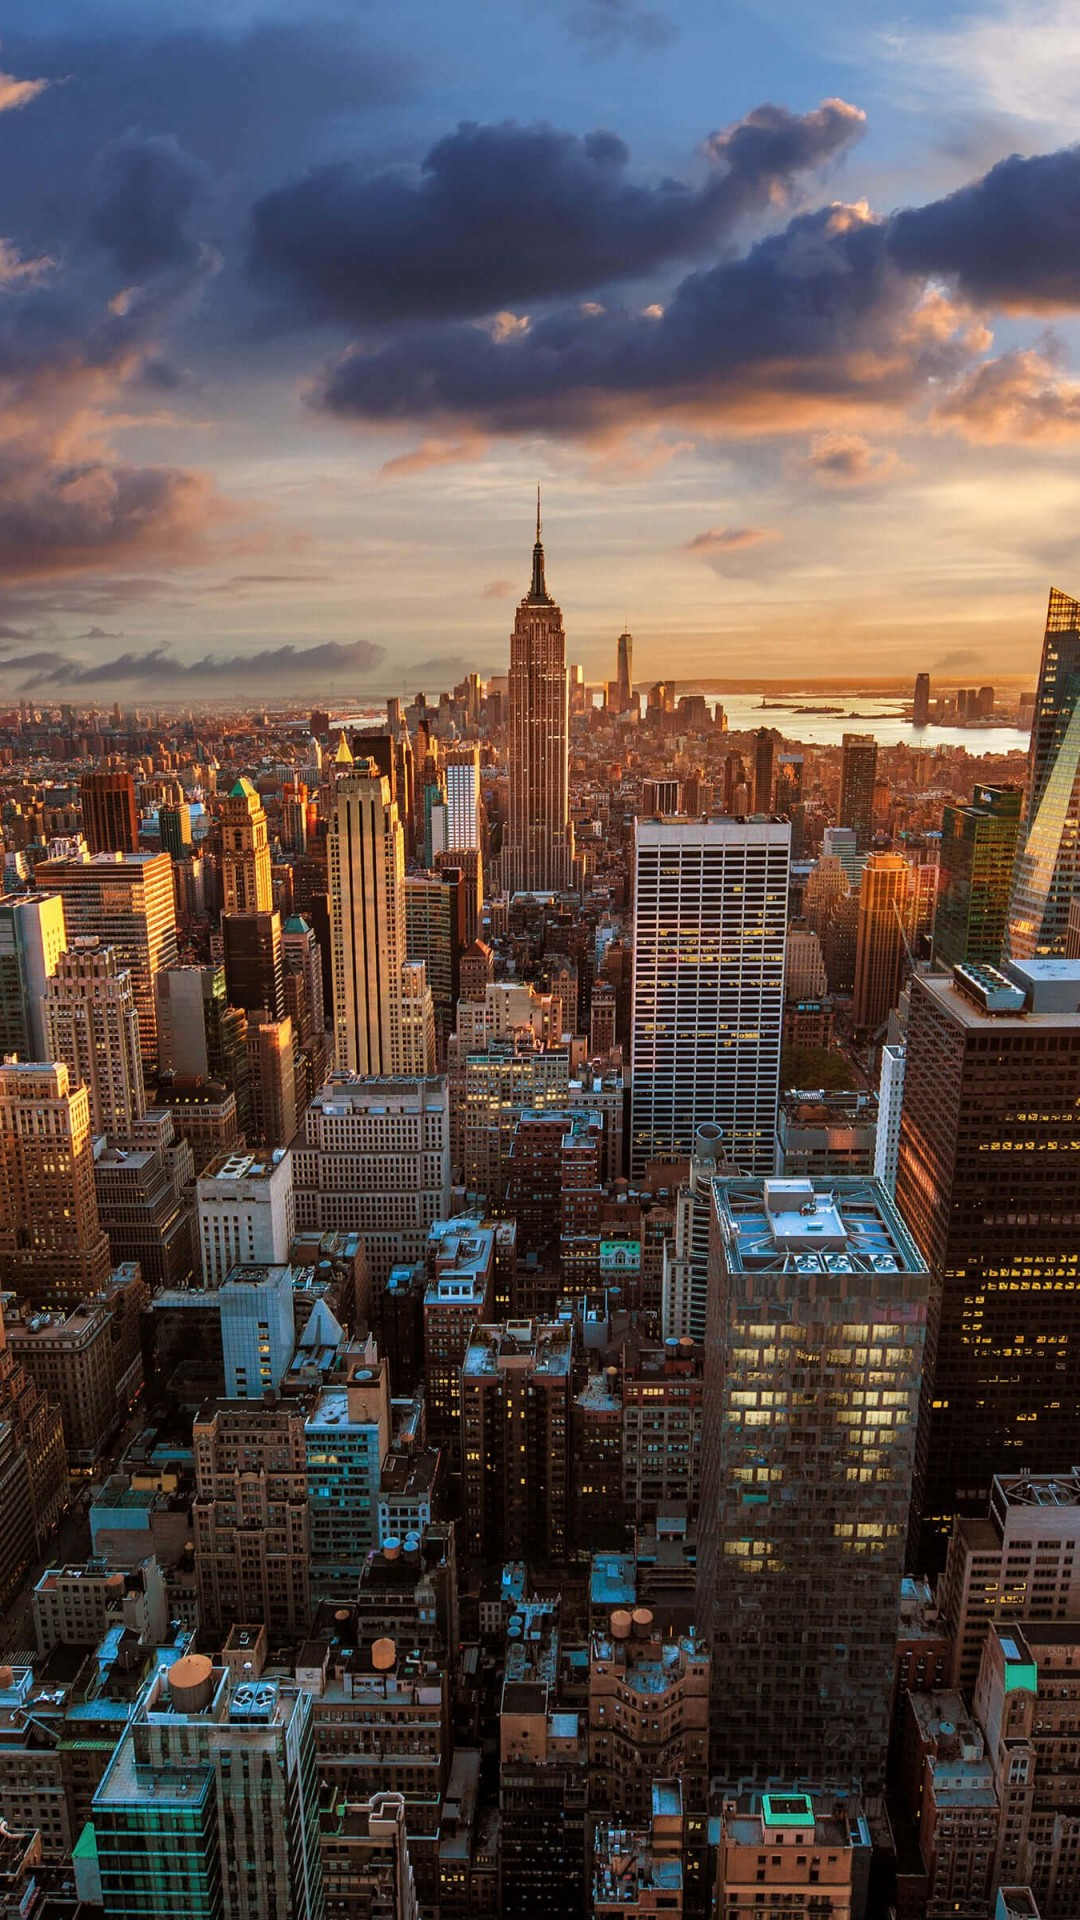 New York City Skyline At Sunset Wallpaper for Motorola Moto X